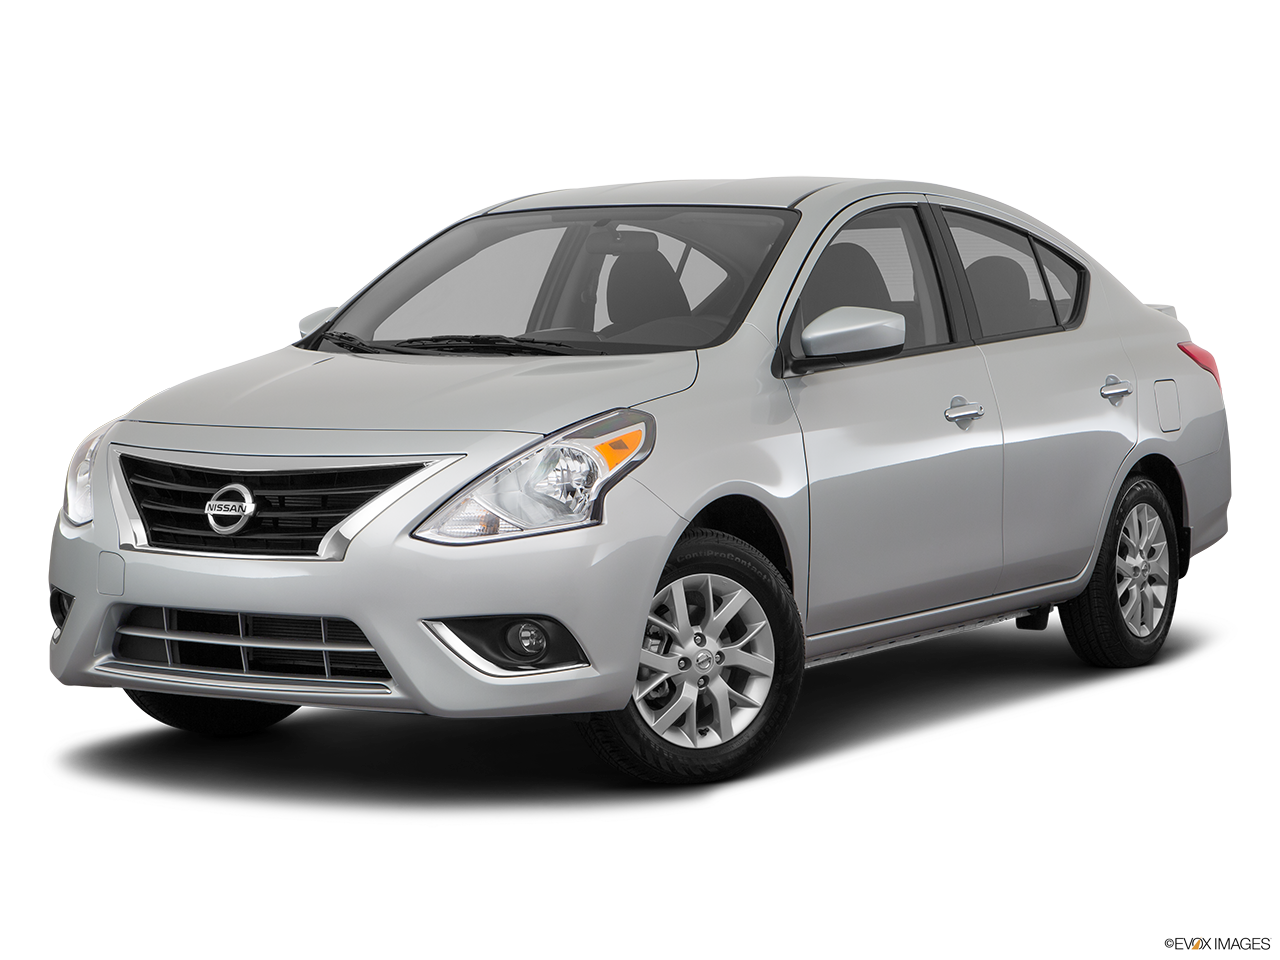 Test Drive A 2017 Nissan Versa® at Empire Nissan in Ontario